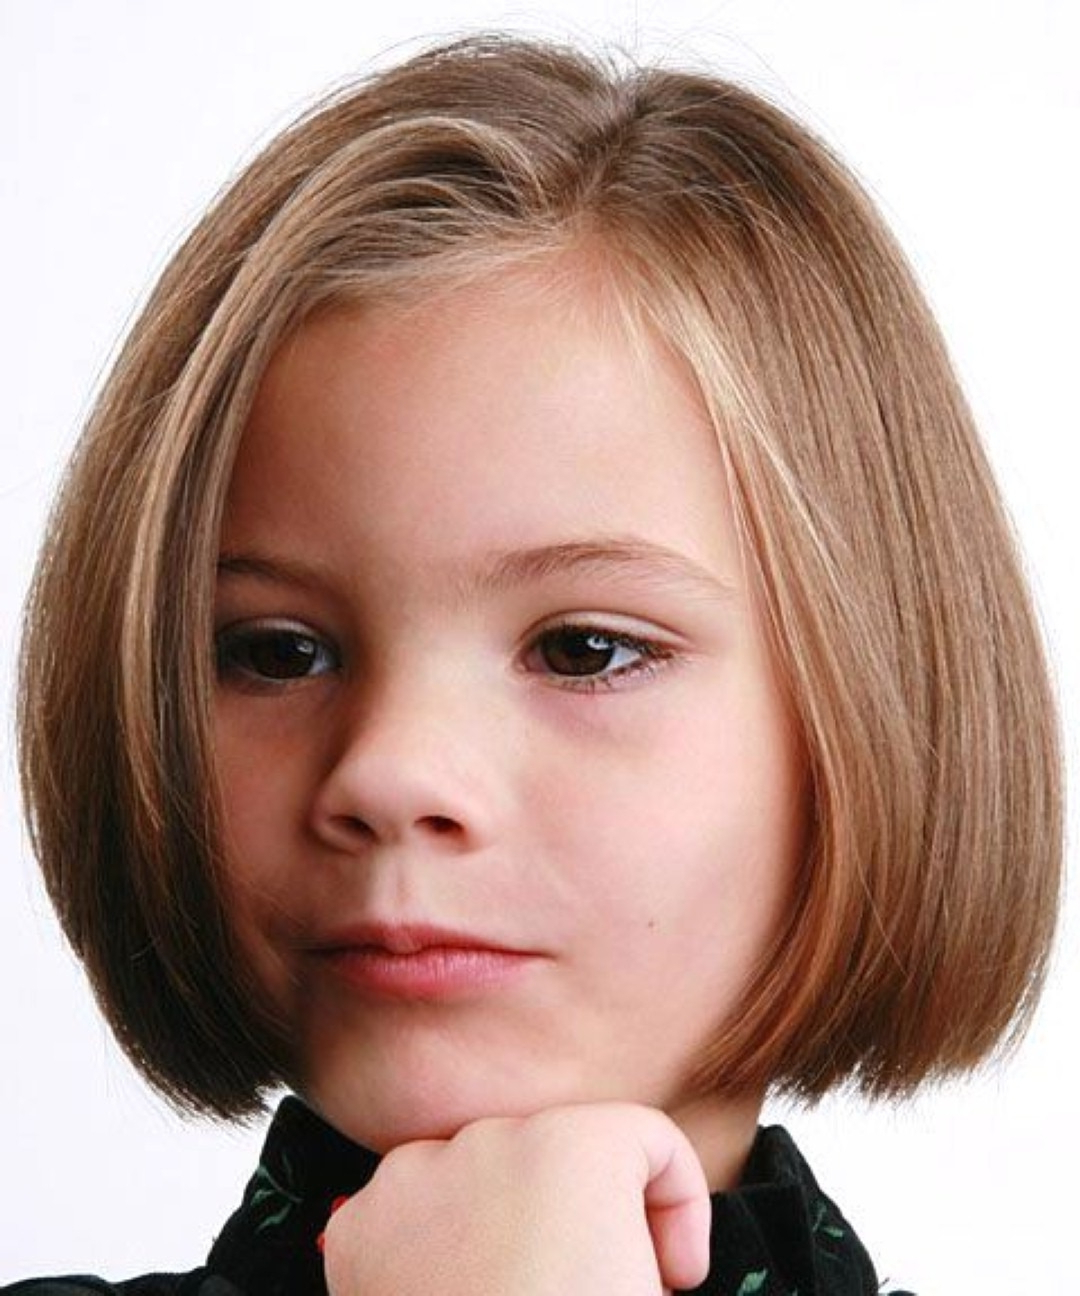 10 Different Cute Short Haircuts For Kids With Picture | Hairstyles Regarding Kids Short Haircuts With Bangs (View 4 of 25)